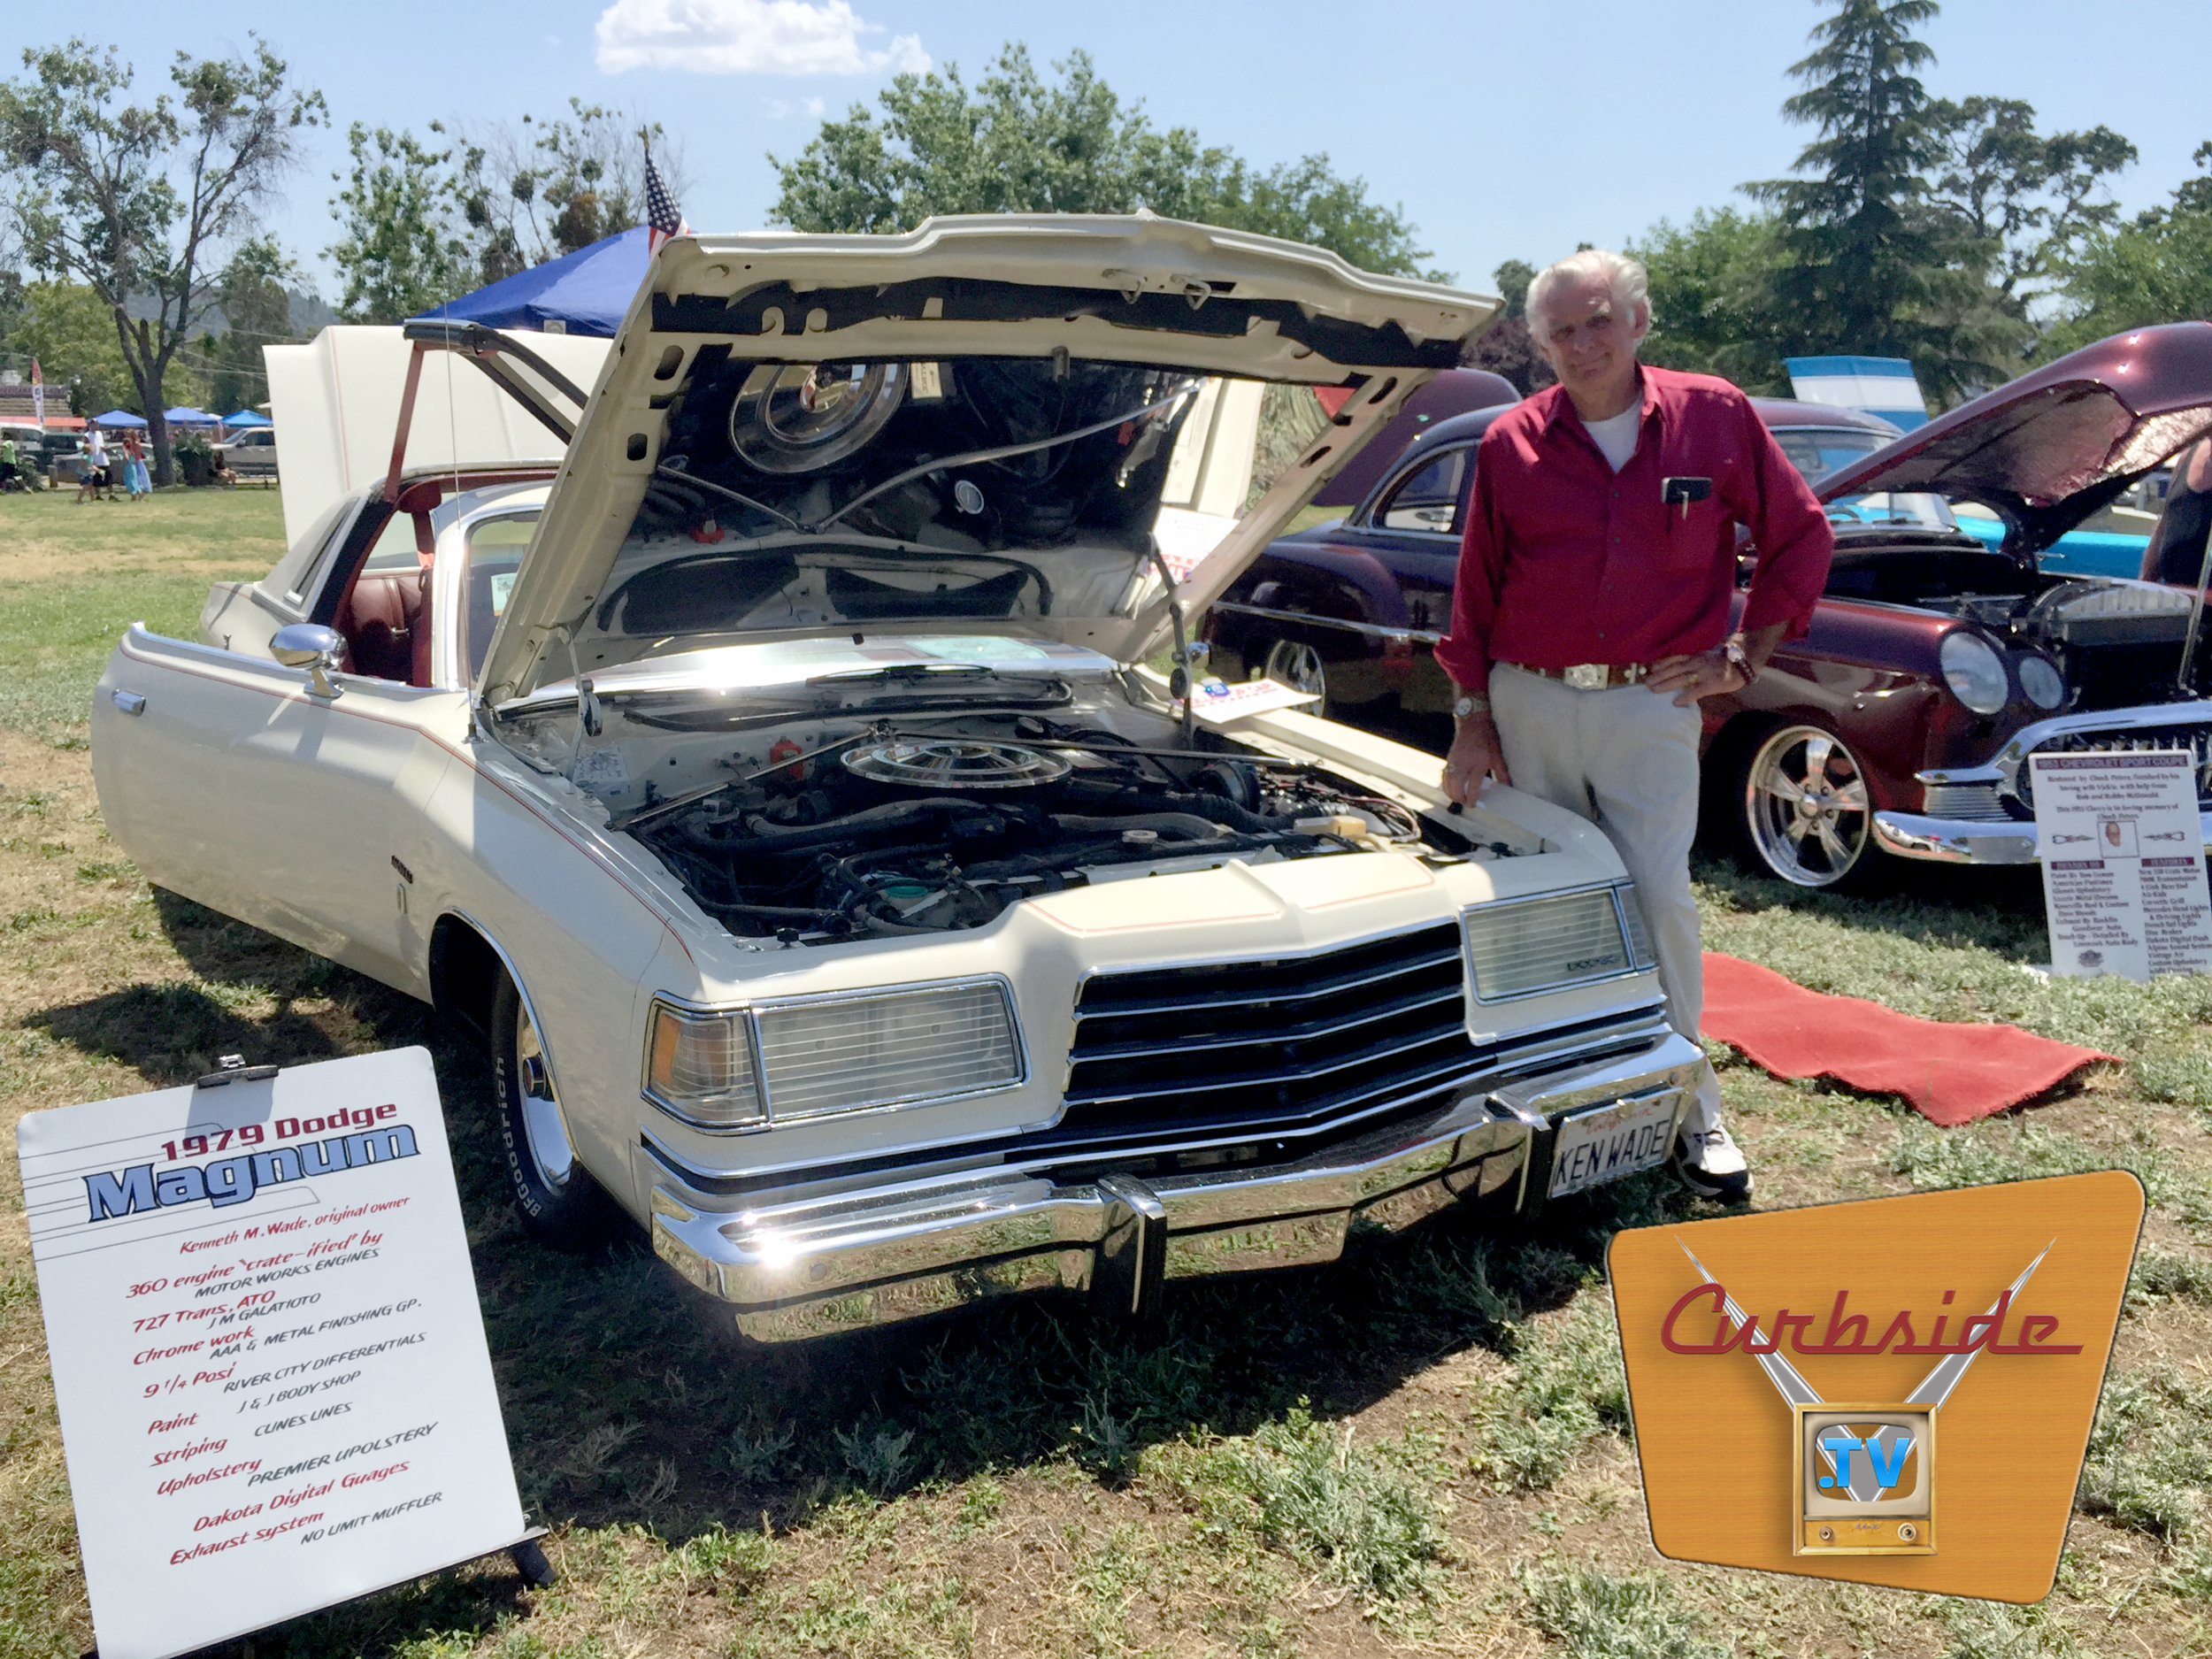 Ken Wade stands with his 1979 Dodge Magnum at a car show.